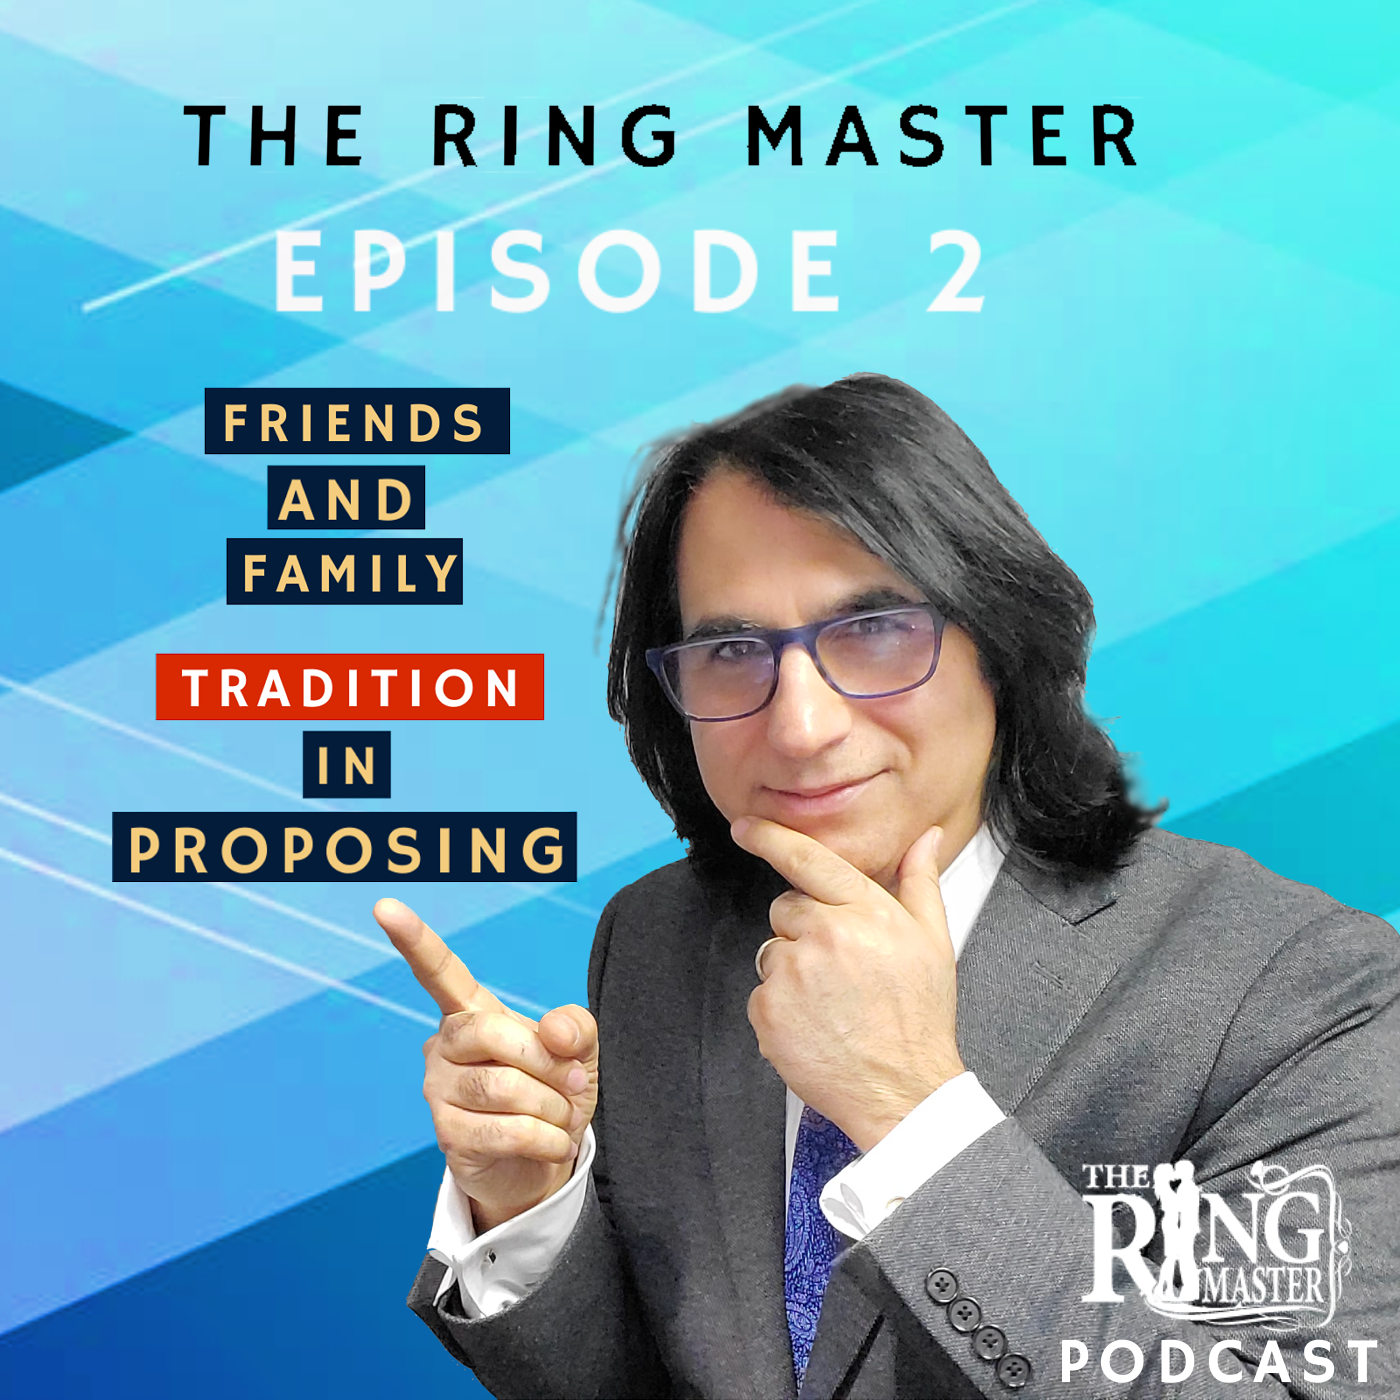 ring-master-podcast-episode-2-friends-and-family-tradition-proposing.png